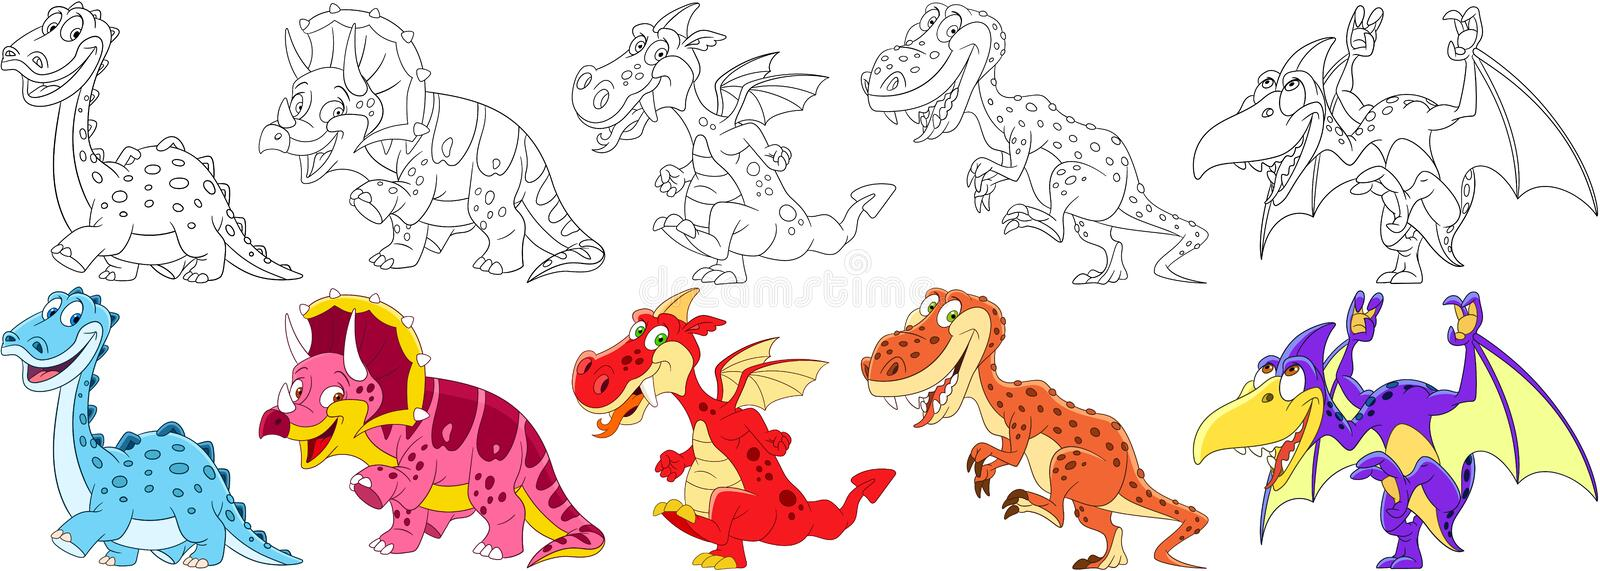 Cartoon dinosaurs set stock image